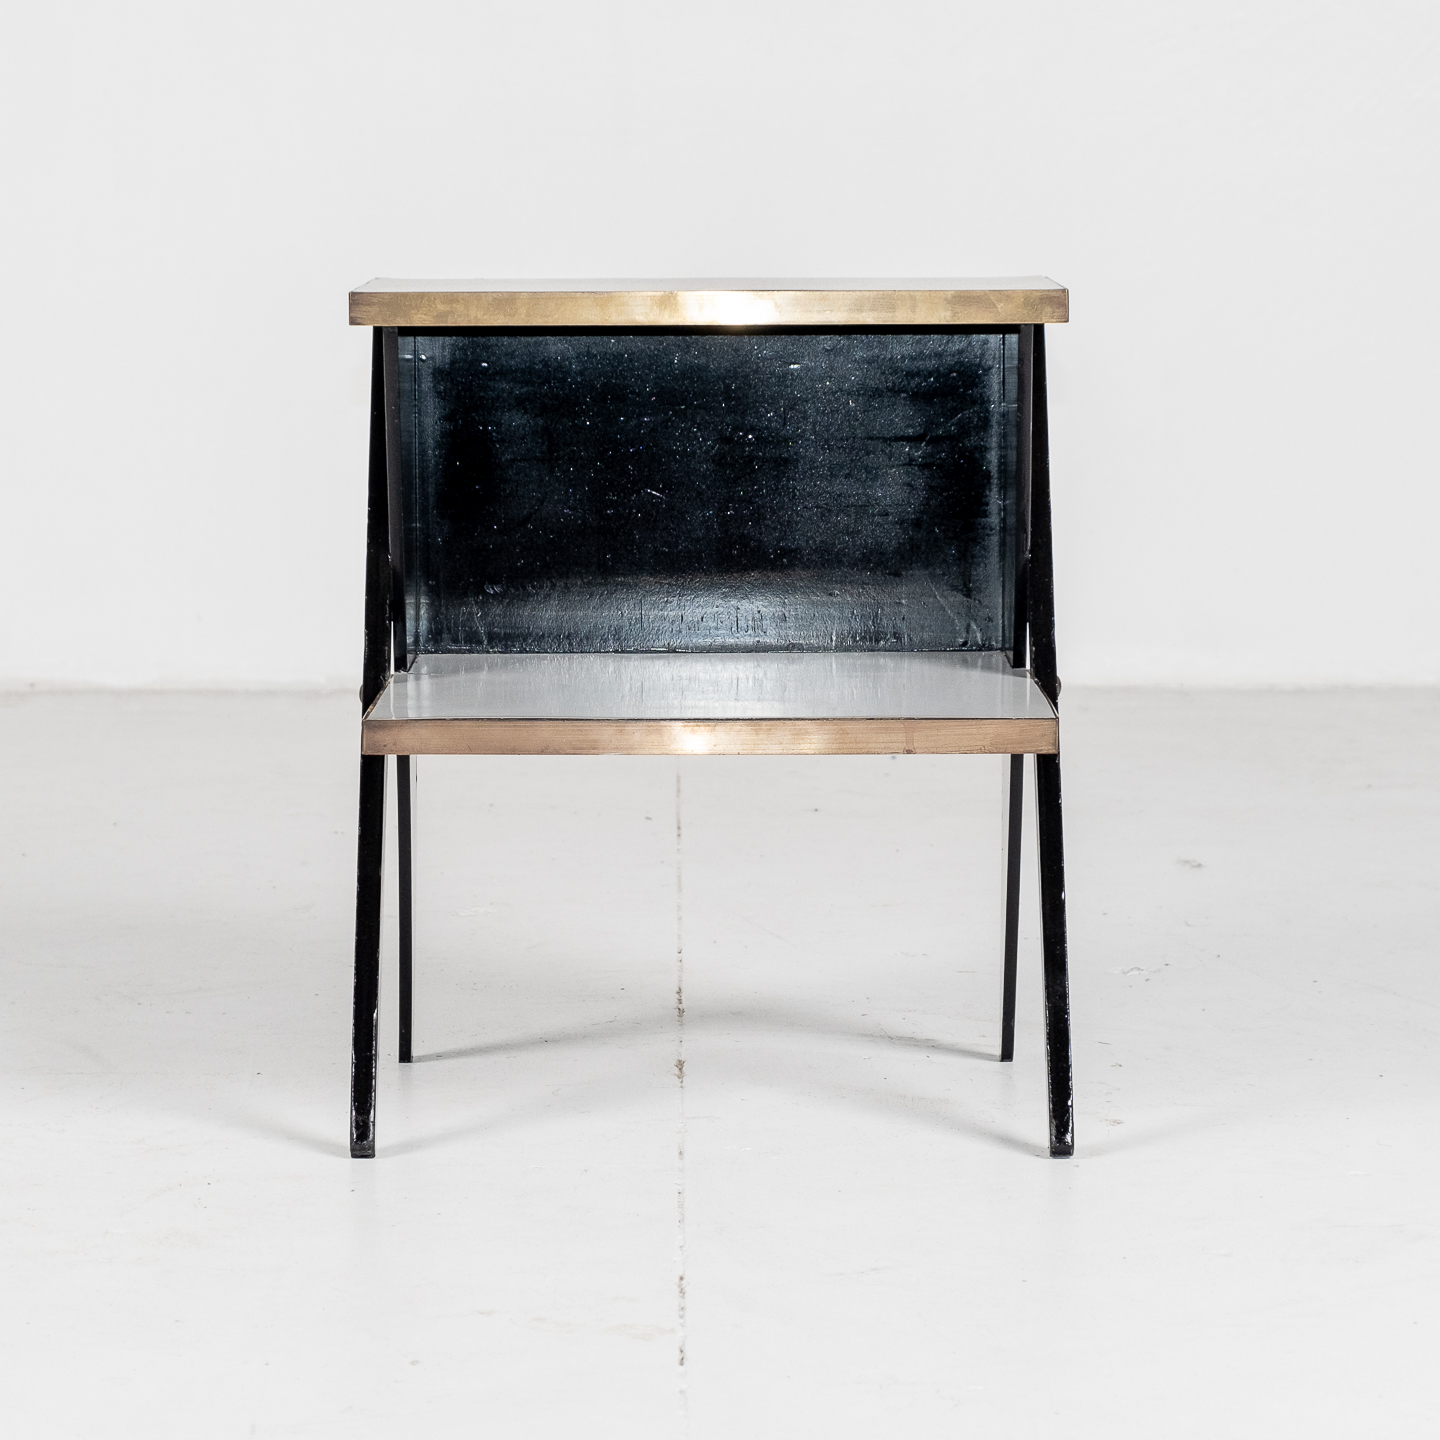 Side Table In The Style Of De Stijl In Brass And Laminate With Ebonised Finish, 1930s, The Netherlands296